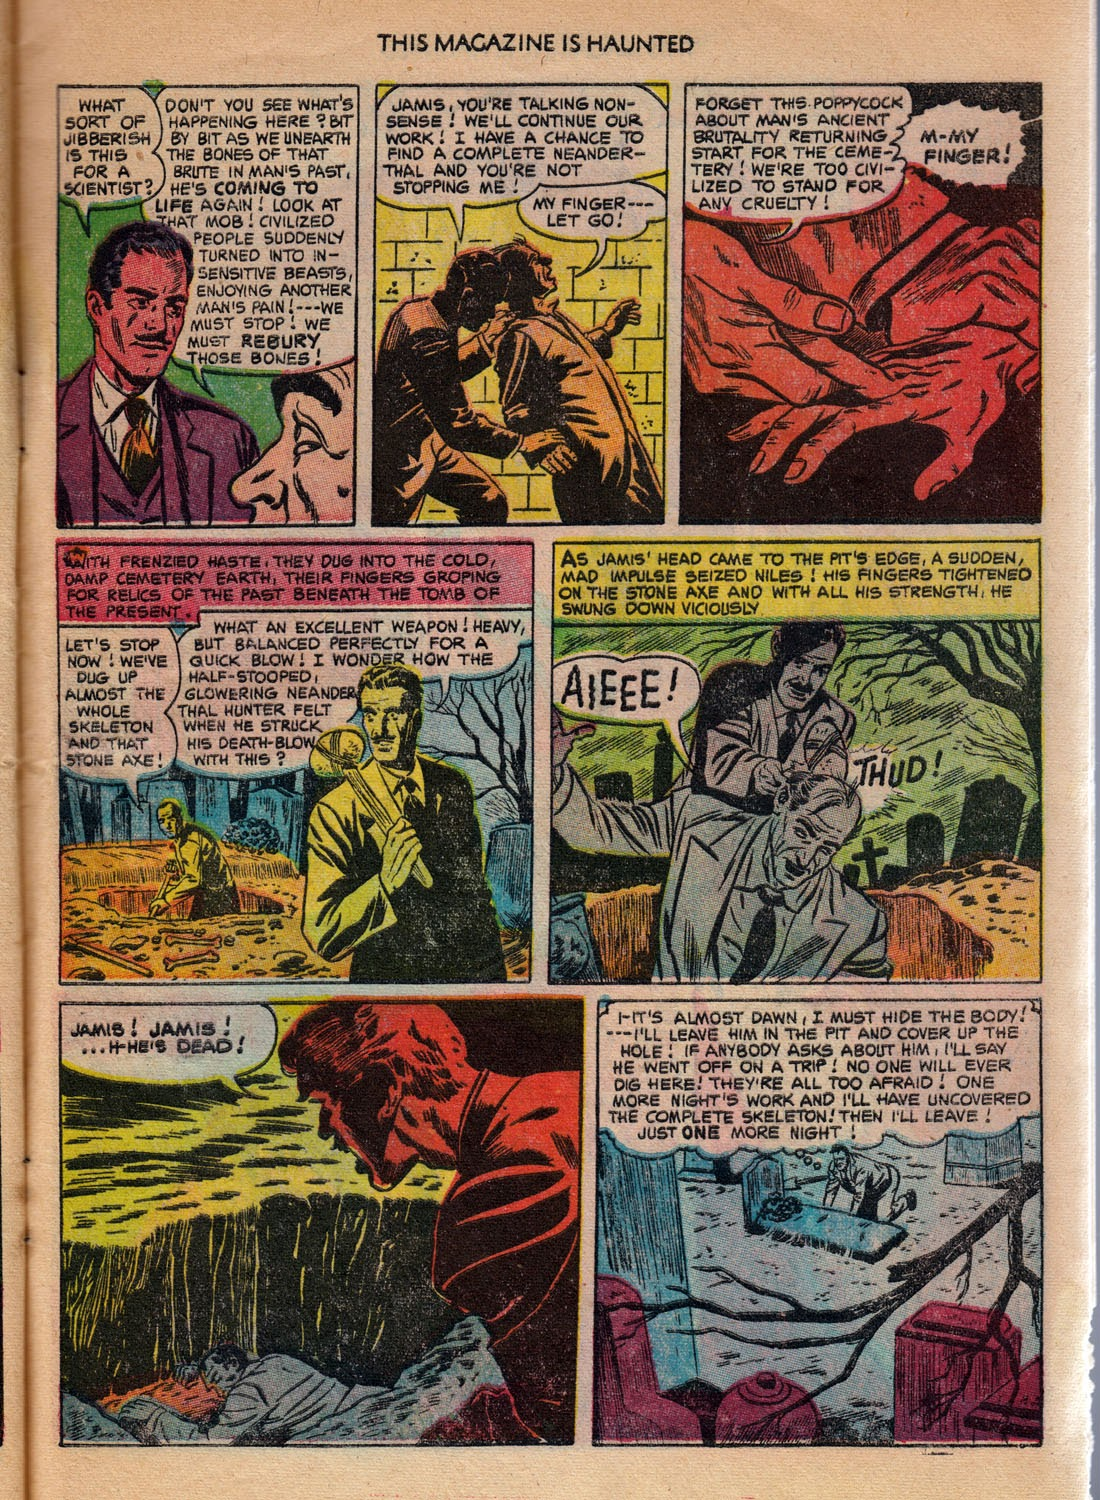 Read online This Magazine Is Haunted comic -  Issue #10 - 9